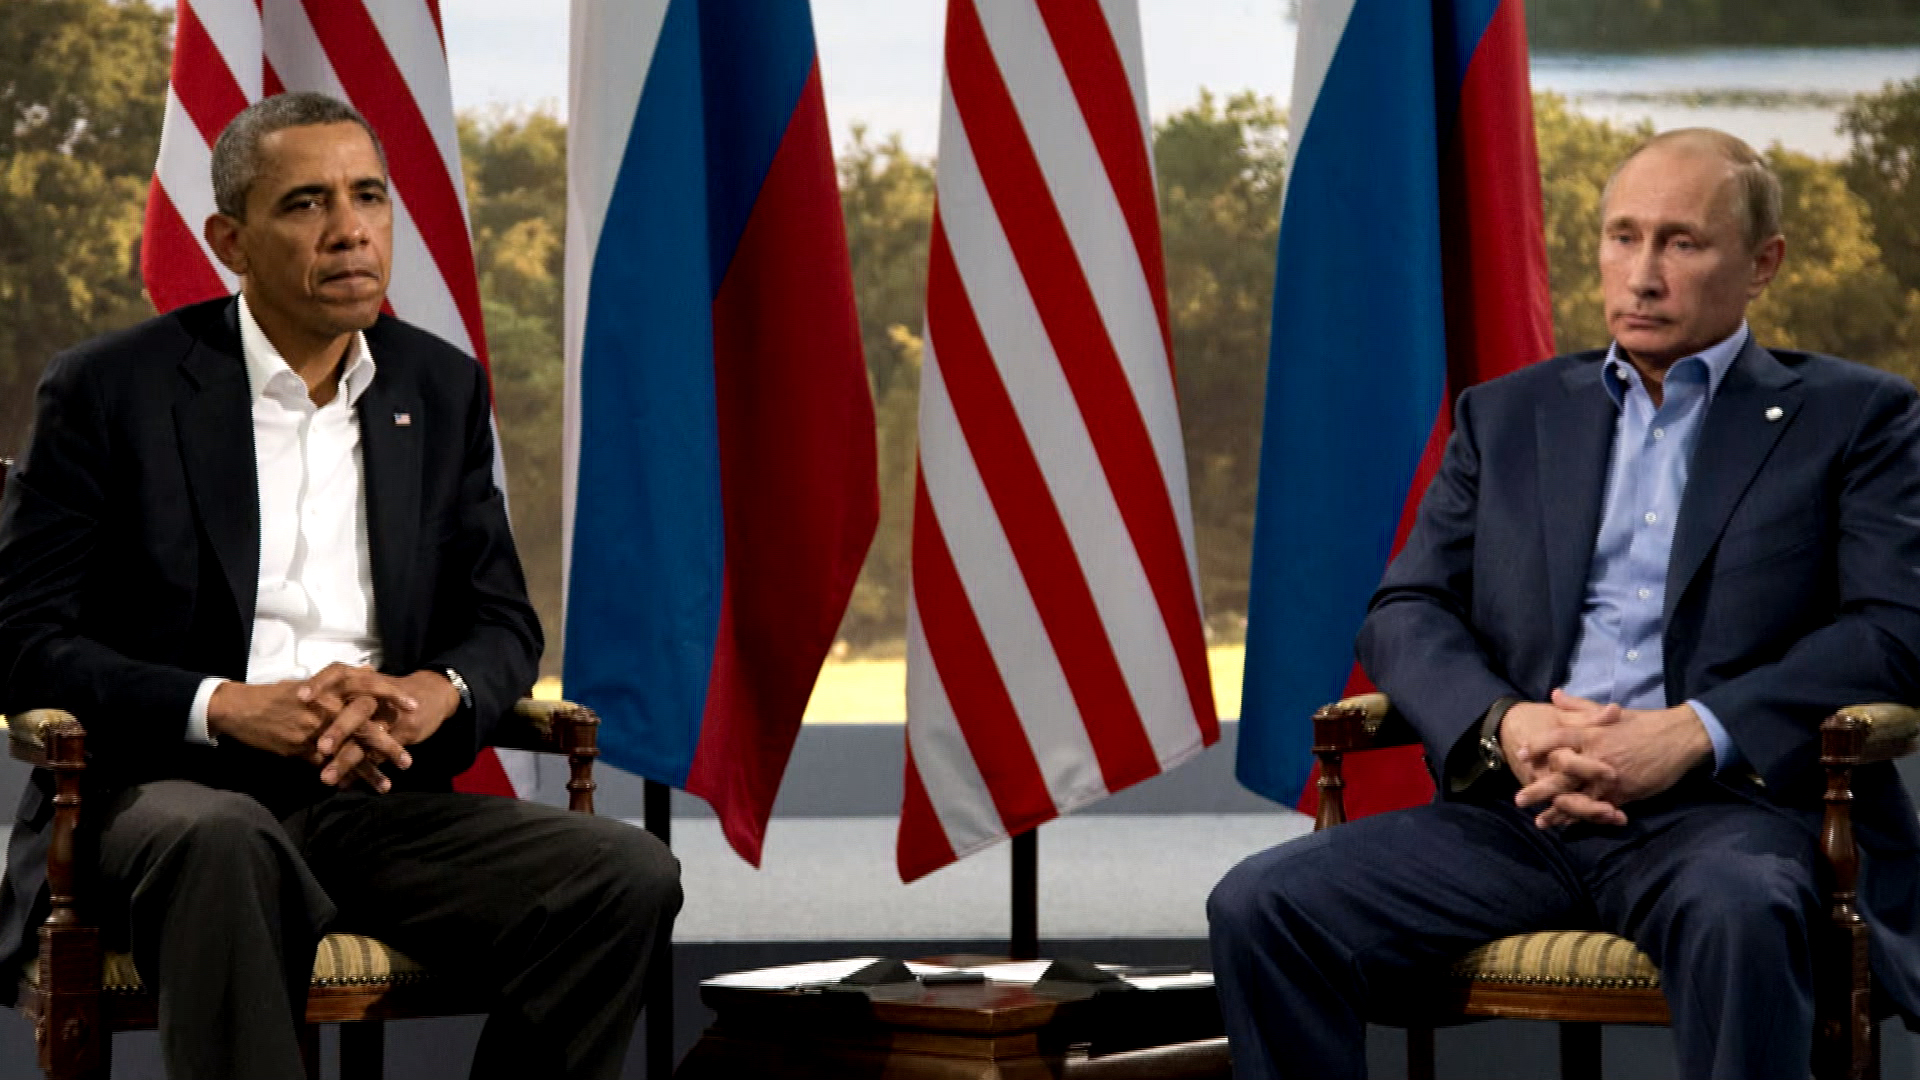 Obama and Putin to Meet on Sidelines of United Nations General Assembly